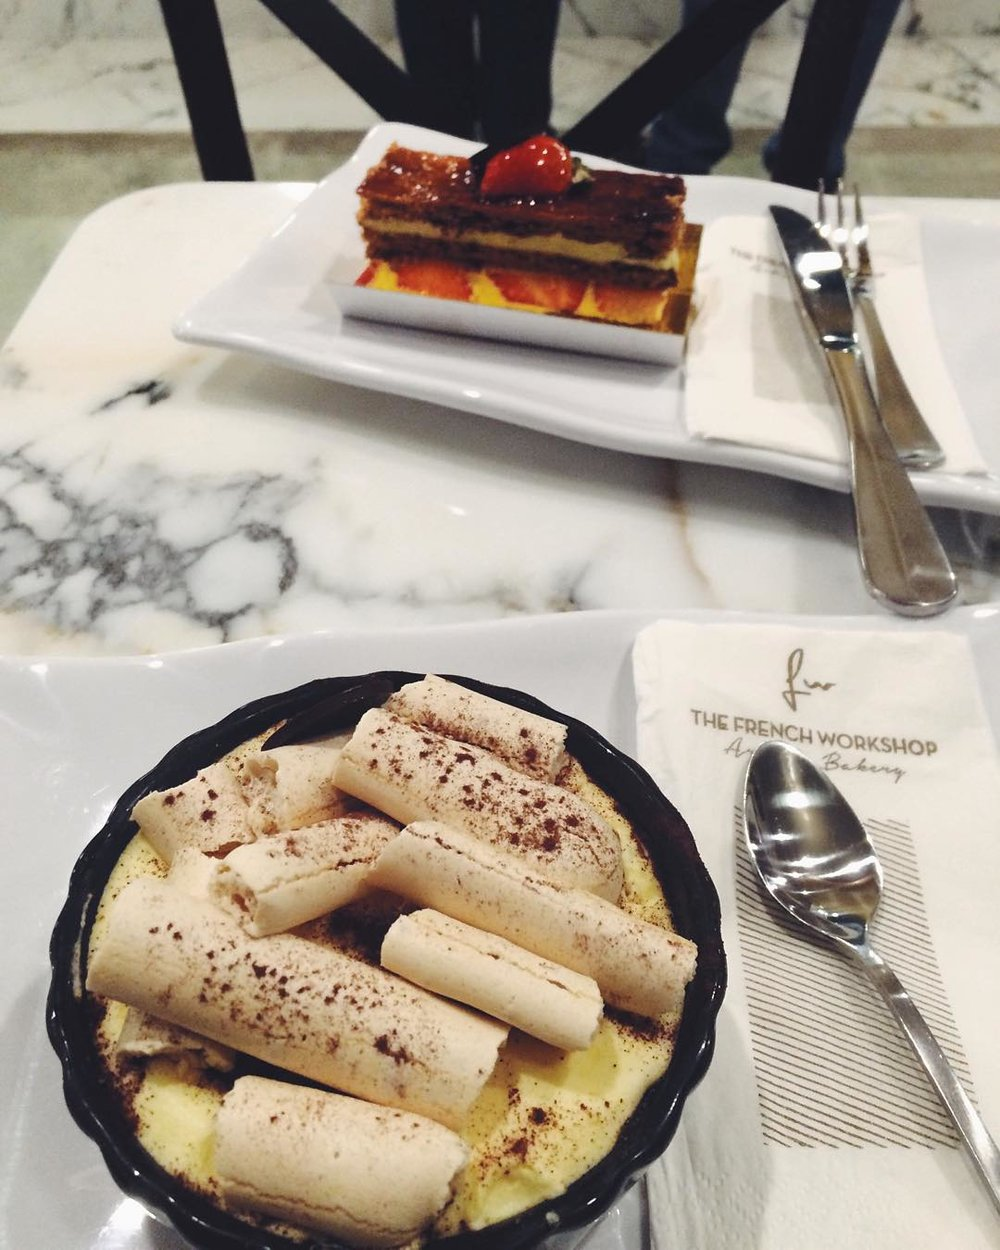 There's a new French bakery in Bayside & the tiramisu is SO GOOD!  @lisa_ocon checked out The French Workshop on Bell Blvd & 39th Ave.          #bayside #baysideny #queensbakeries #queenseats #queensistasty #heartofqueens #bellblvd  (at Bell Blvd.)